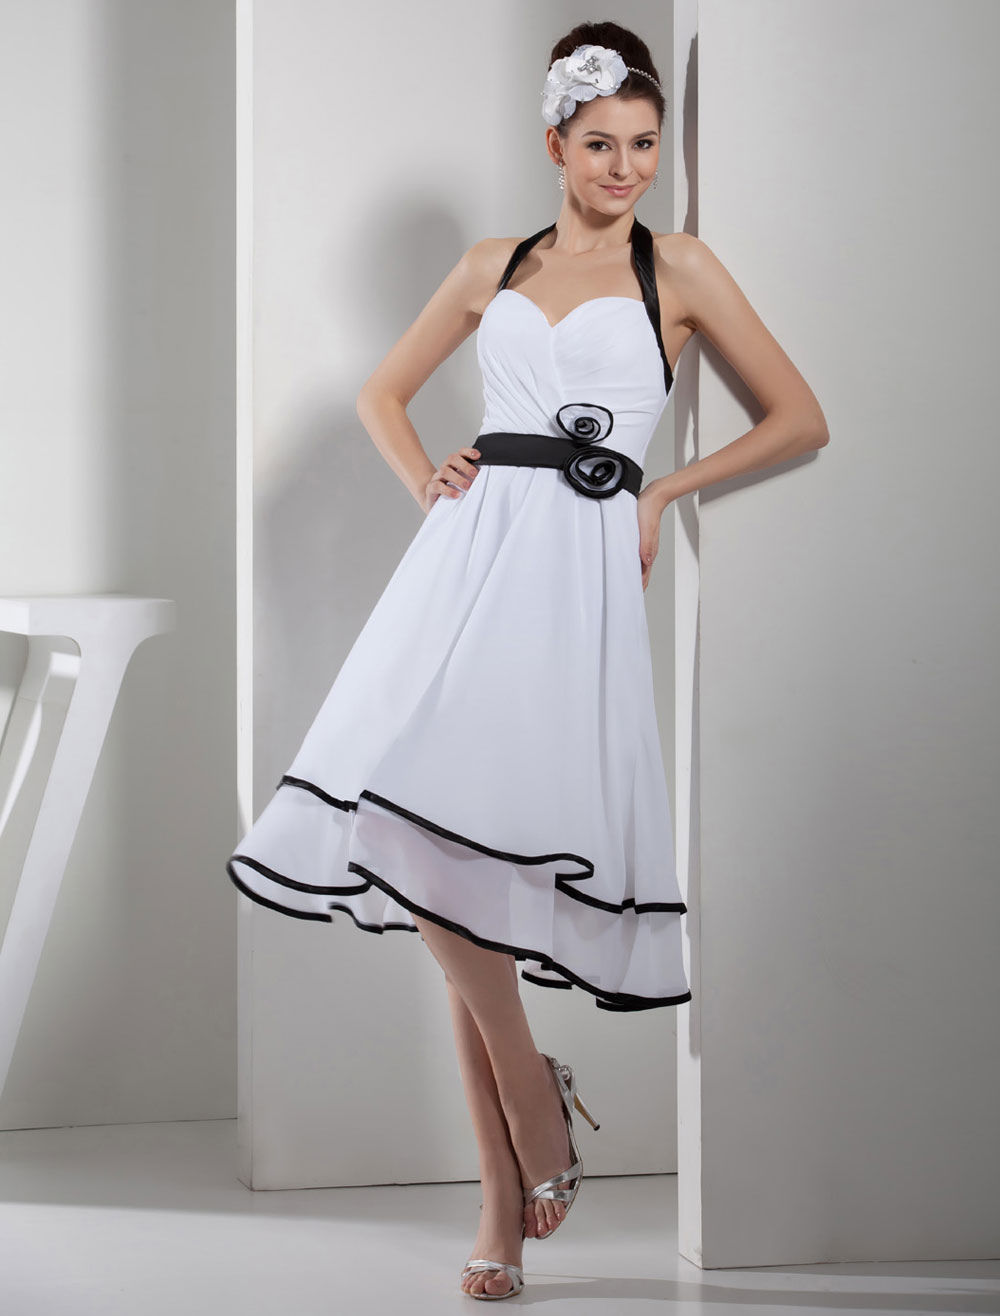 43accce6d5 ... Halter Homecoming Dress Pleated Flower Applique Chiffon A-Line Backless  Cocktail Dress Short Prom Dress. 12. 30%OFF. Color White